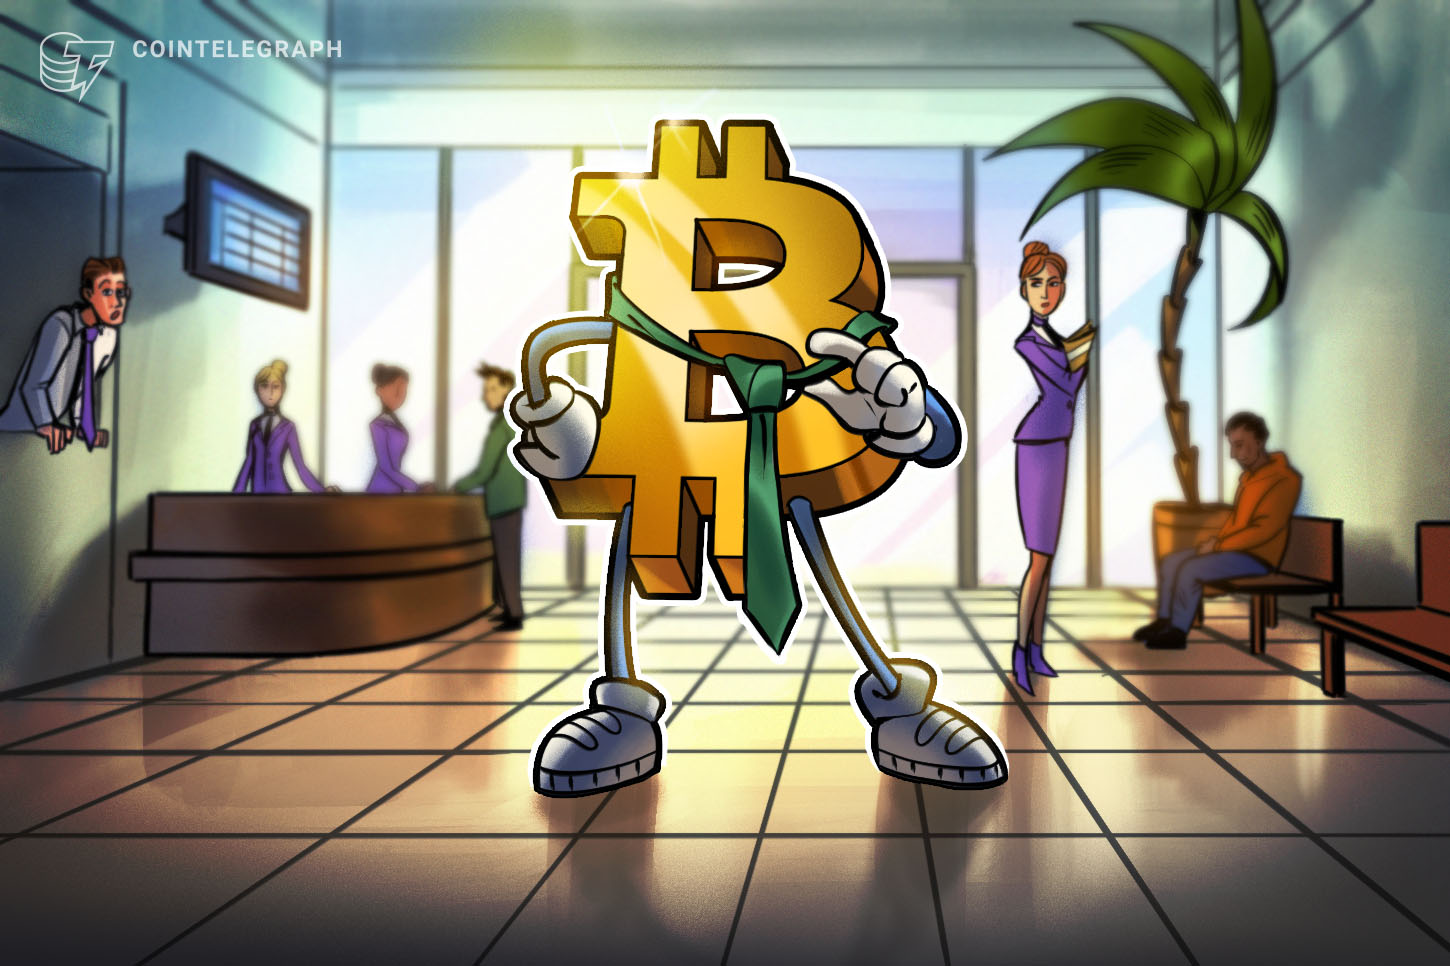 BTC Markets taps licensed neobank Volt for integrated banking features